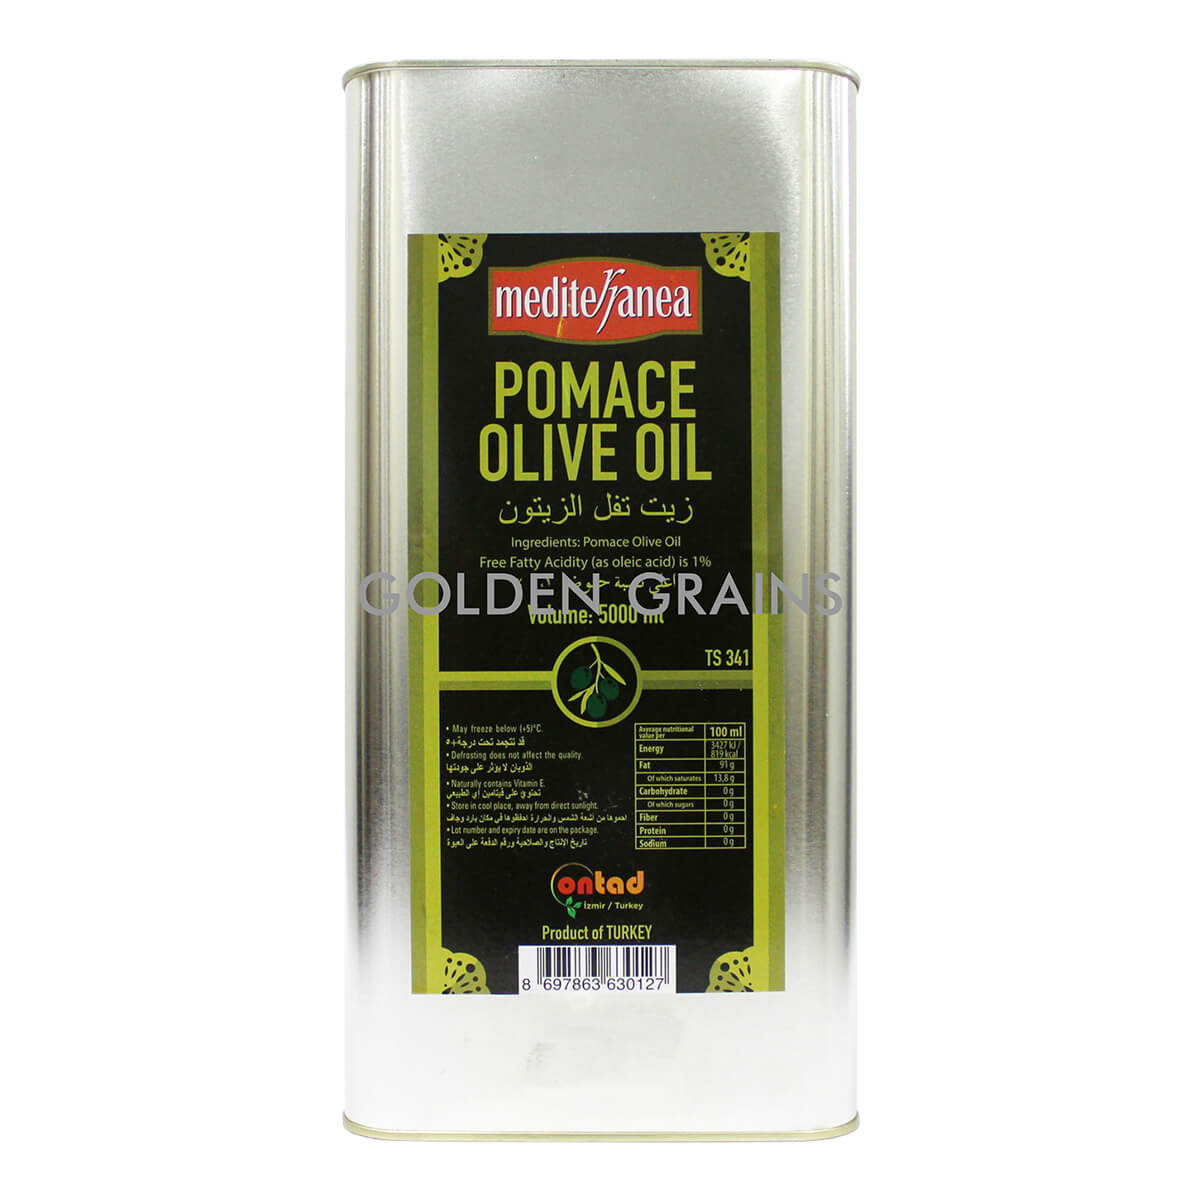 Golden Grains Mediterranea - Pomace Oil - Front.jpg